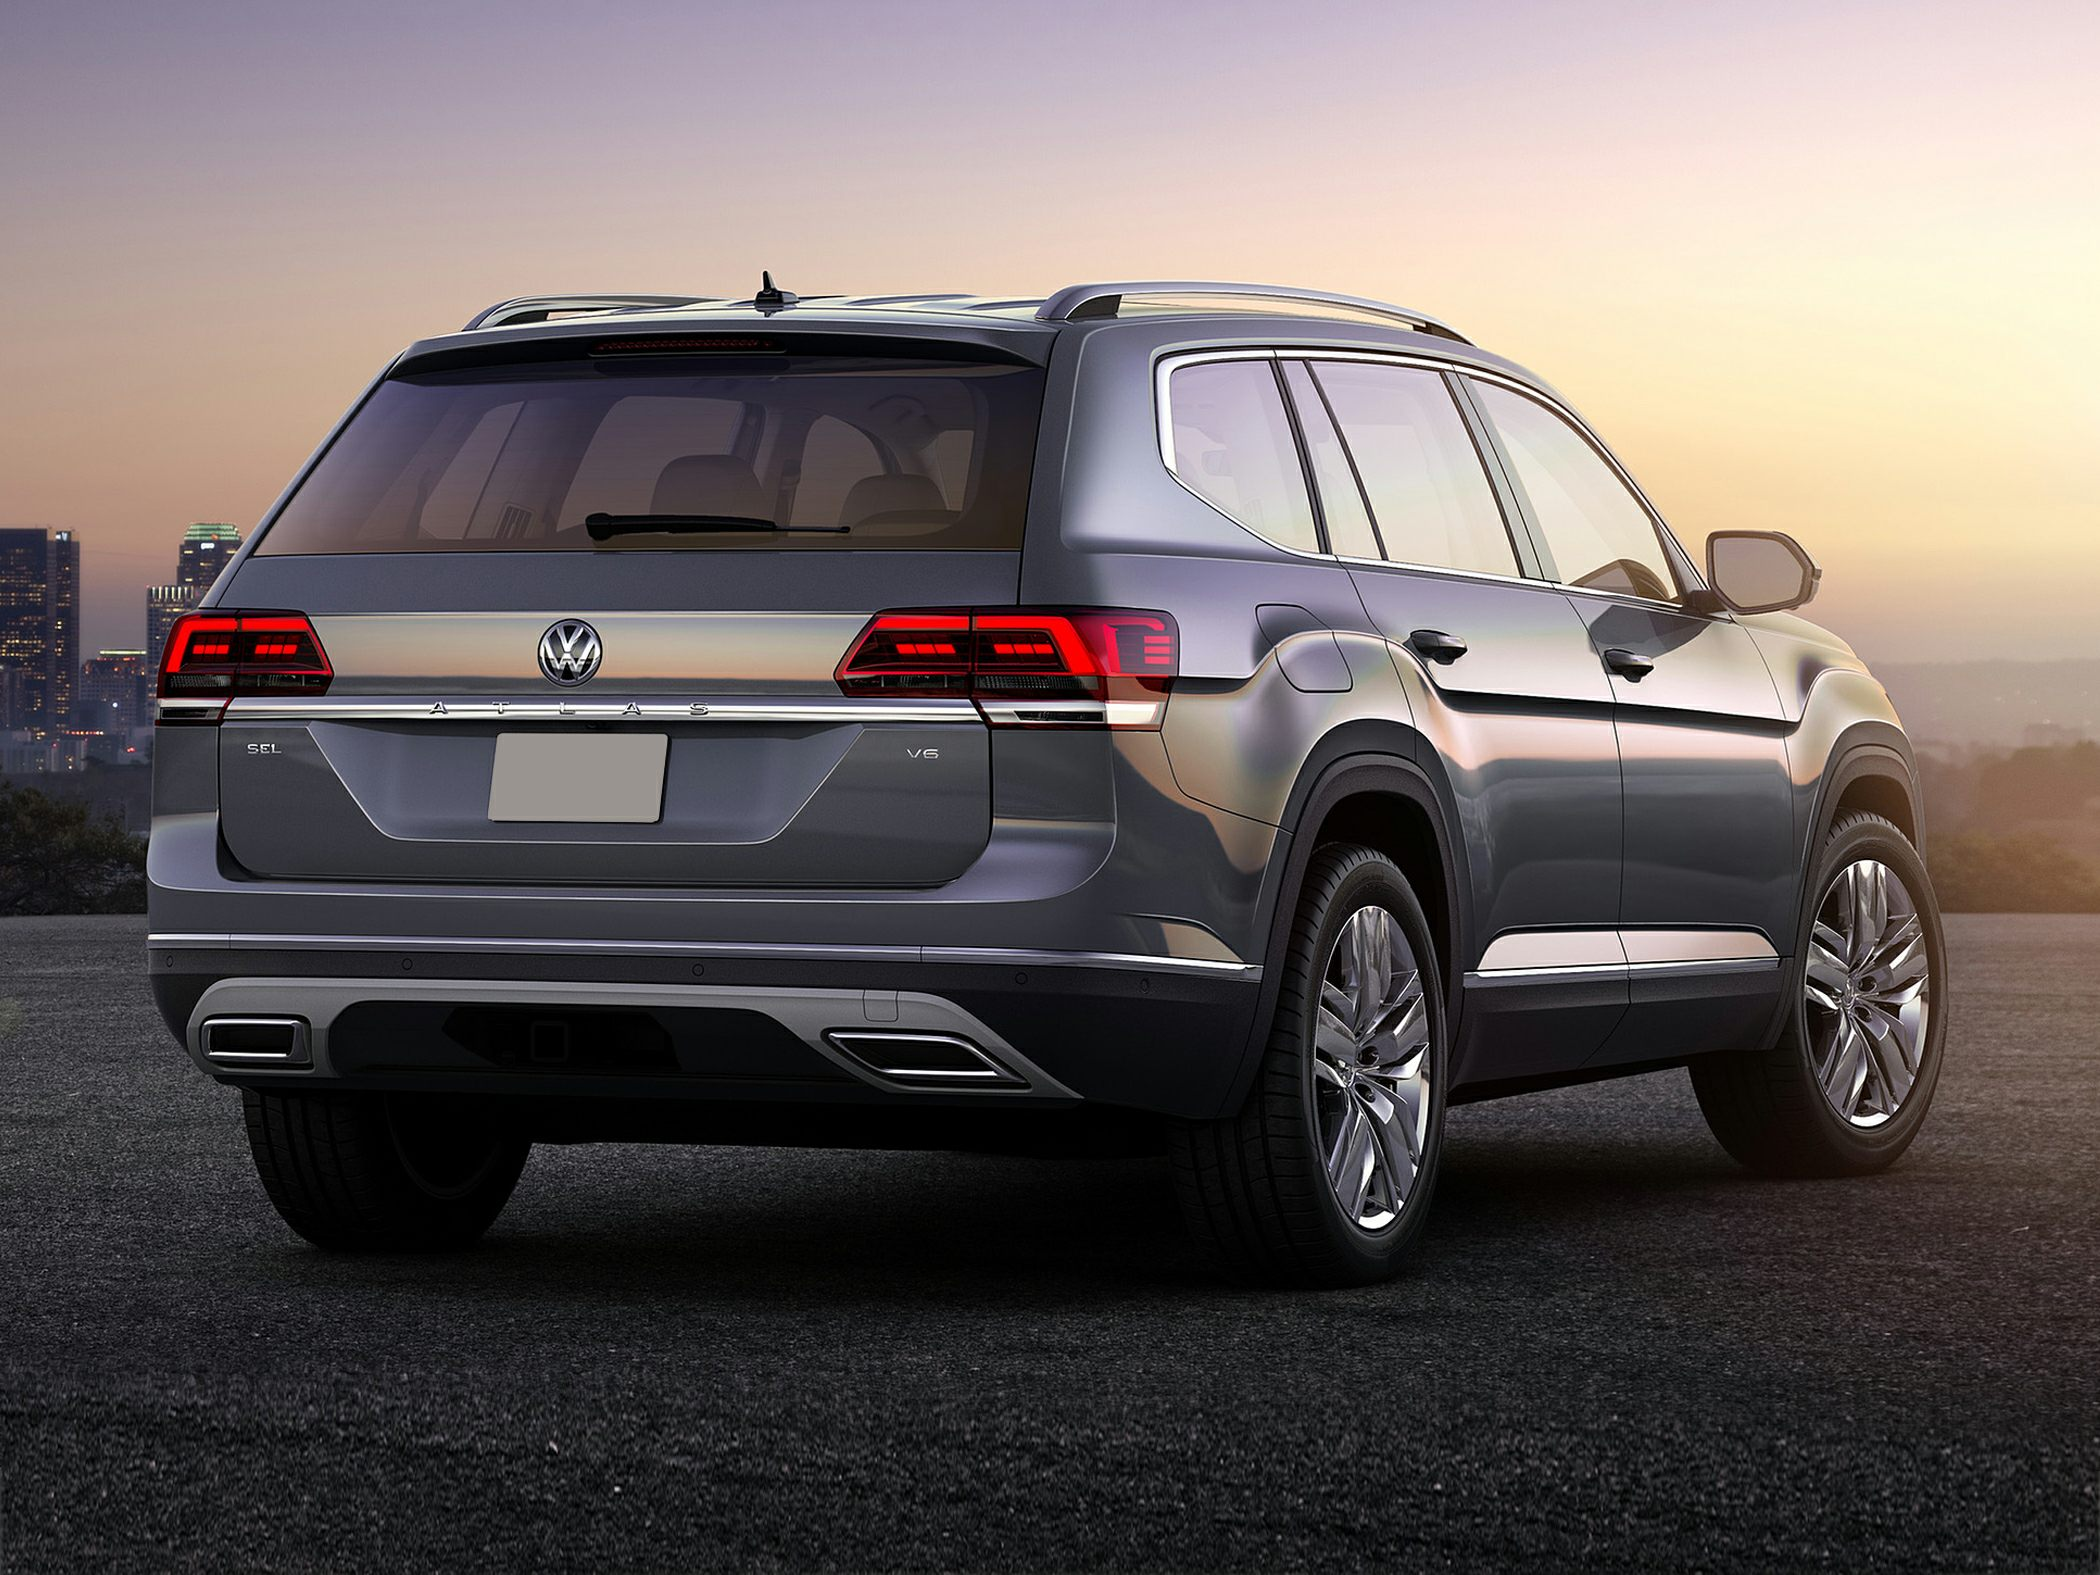 2019 Volkswagen Atlas Deals, Prices, Incentives & Leases, Overview - CarsDirect